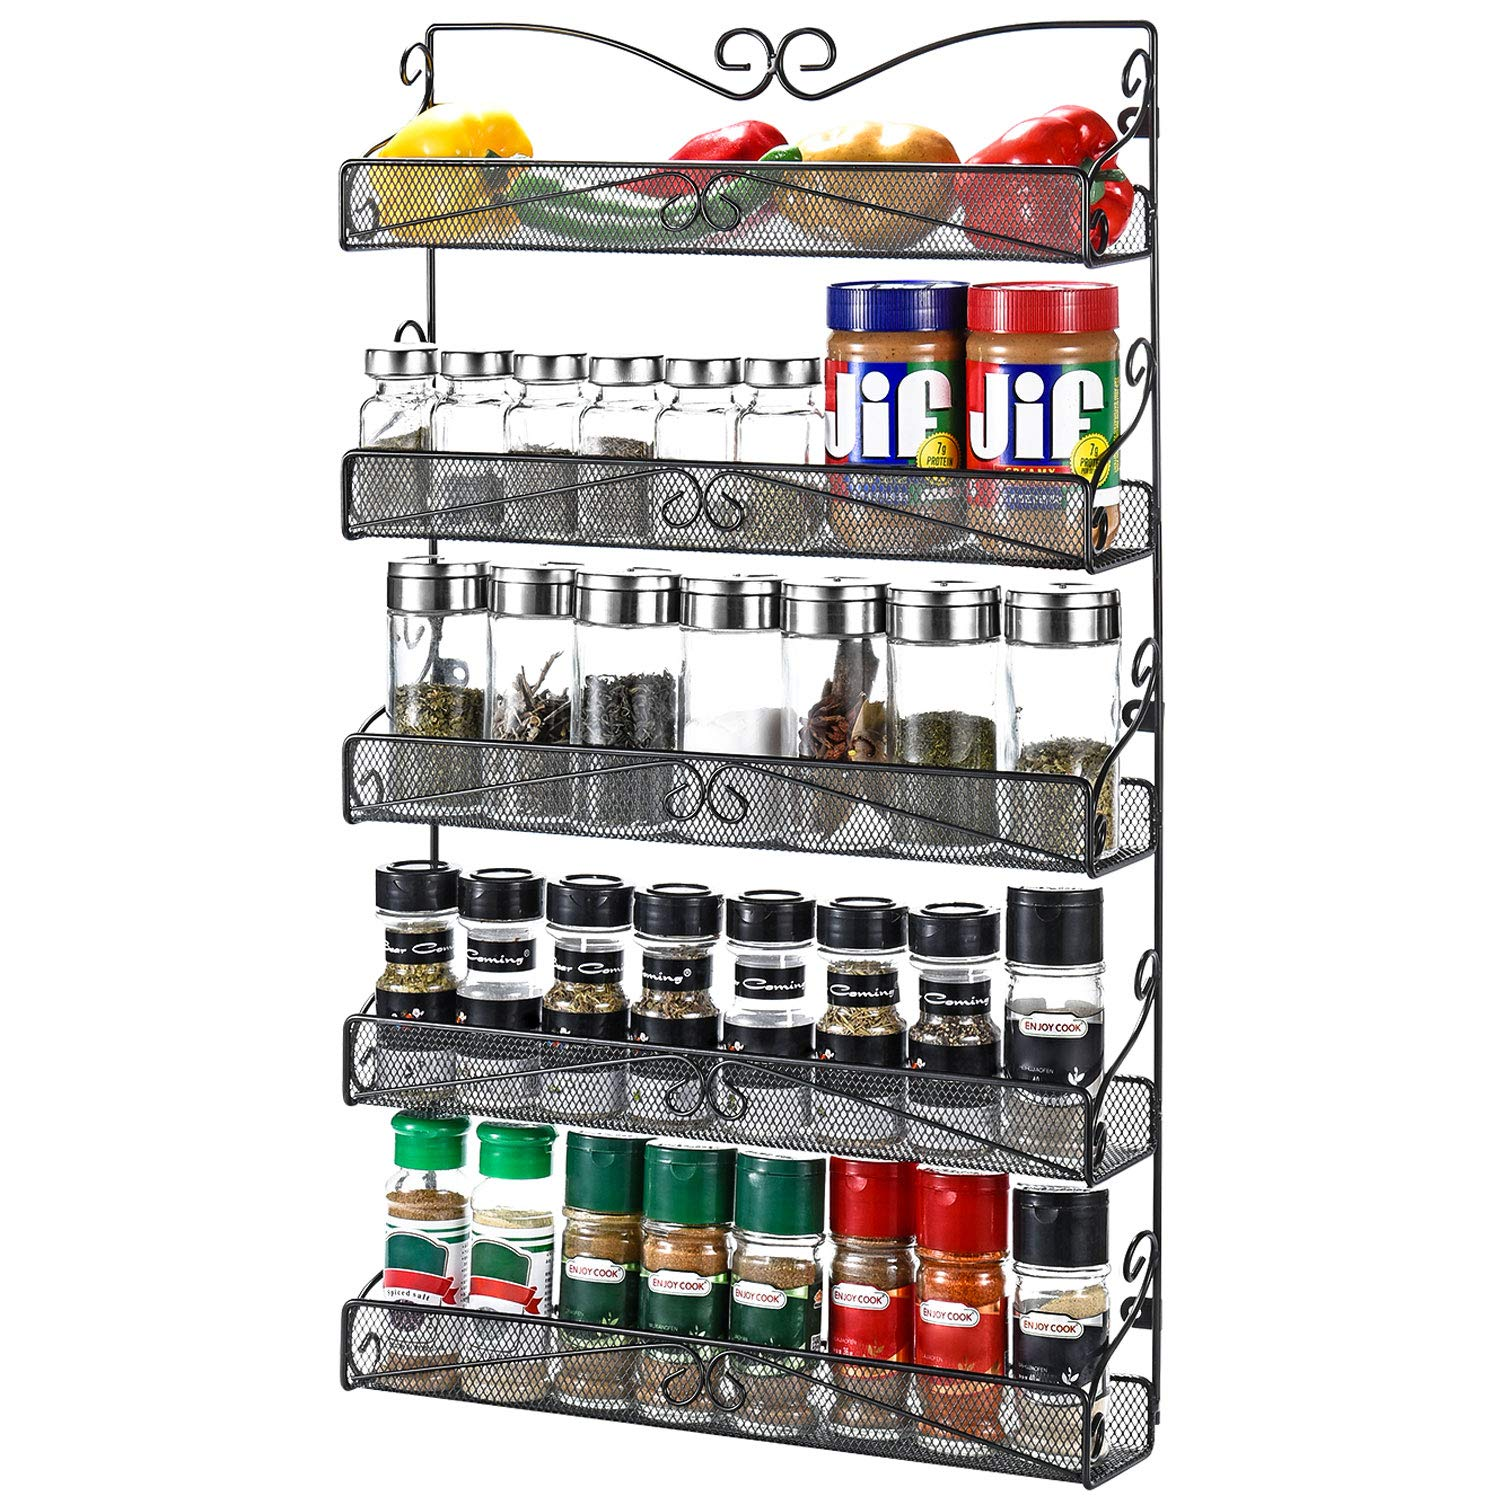 20S Wall Mounted Spice Rack Organizer for Cabinet Pantry Door ...